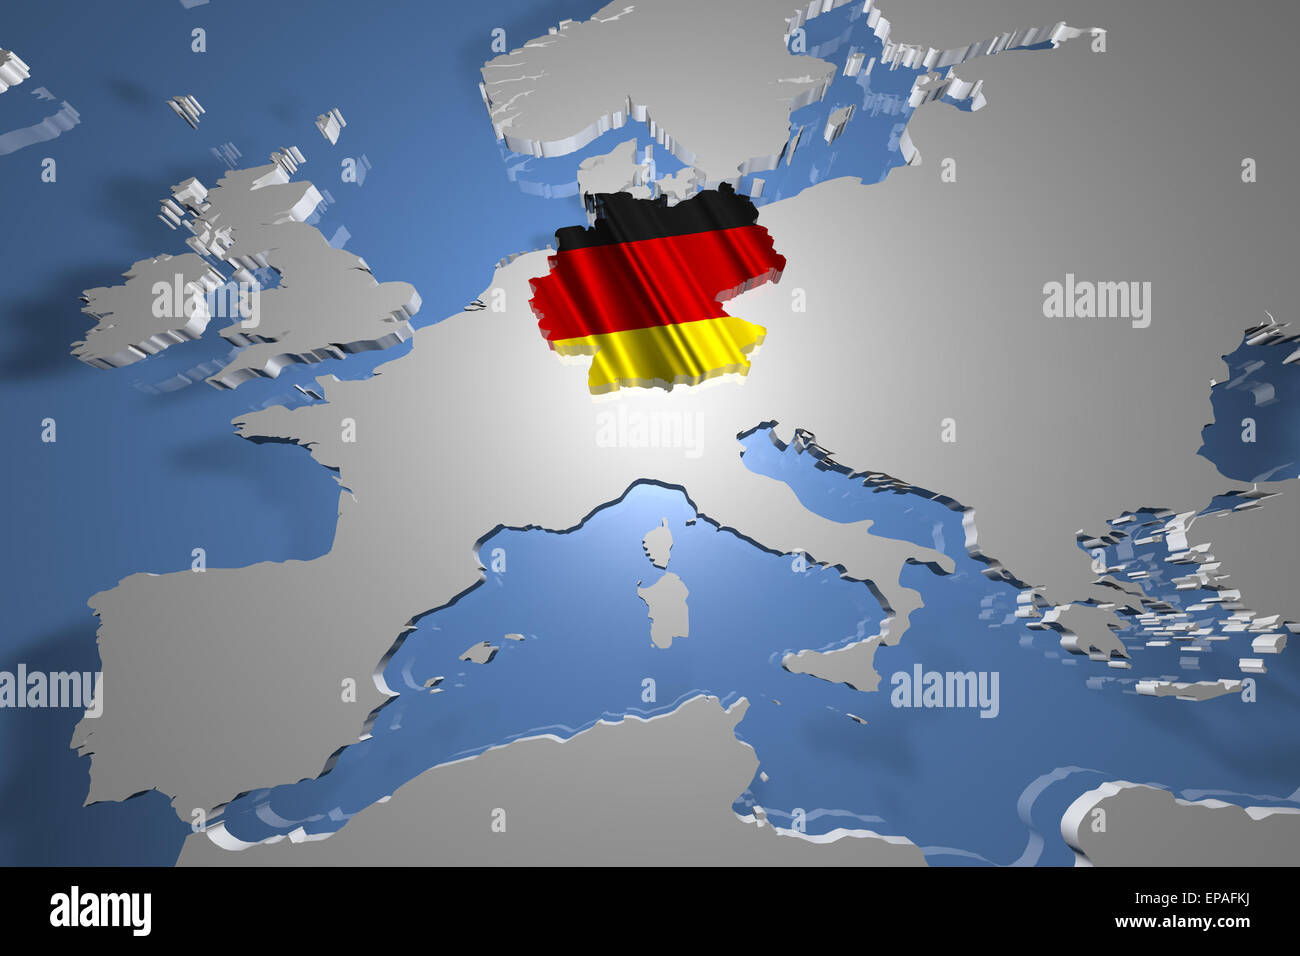 Germany On The Map on germany women's soccer, germany flag, germany river map, germany europe, germany single women, world map, germany regions, germany capital, germany electricity sources, baumholder germany army base map, germany land, germany on the globe, germany city, germany airport map, germany clothes, germany ladies, germany road map, germany people, germany beach, germany ww1,